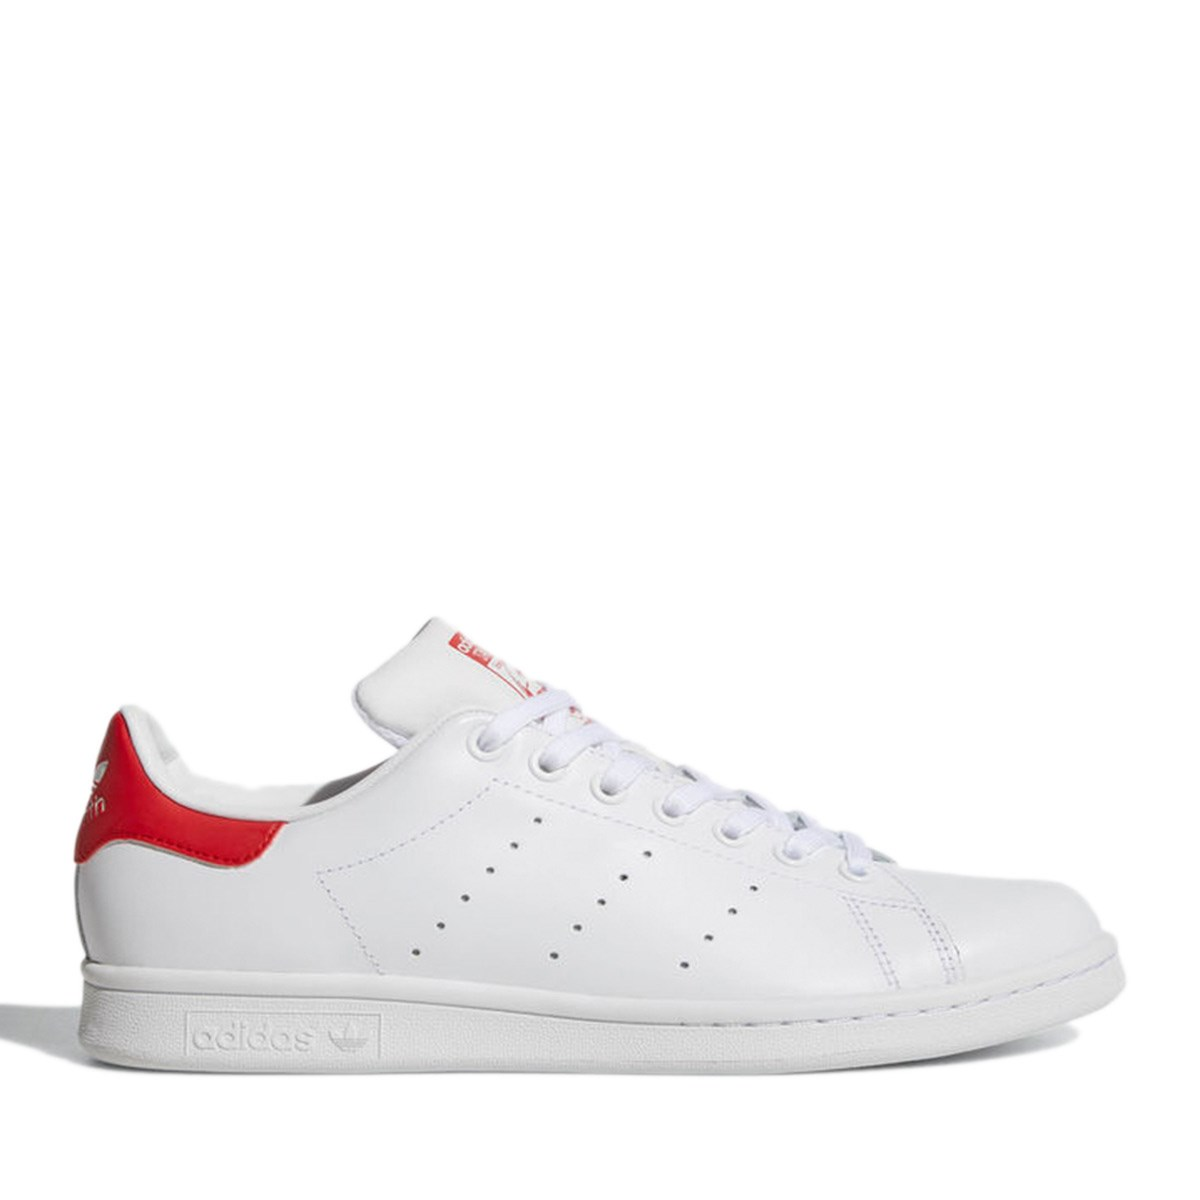 new concept f9c46 b8410 Men's Stan Smith Sneakers in Red